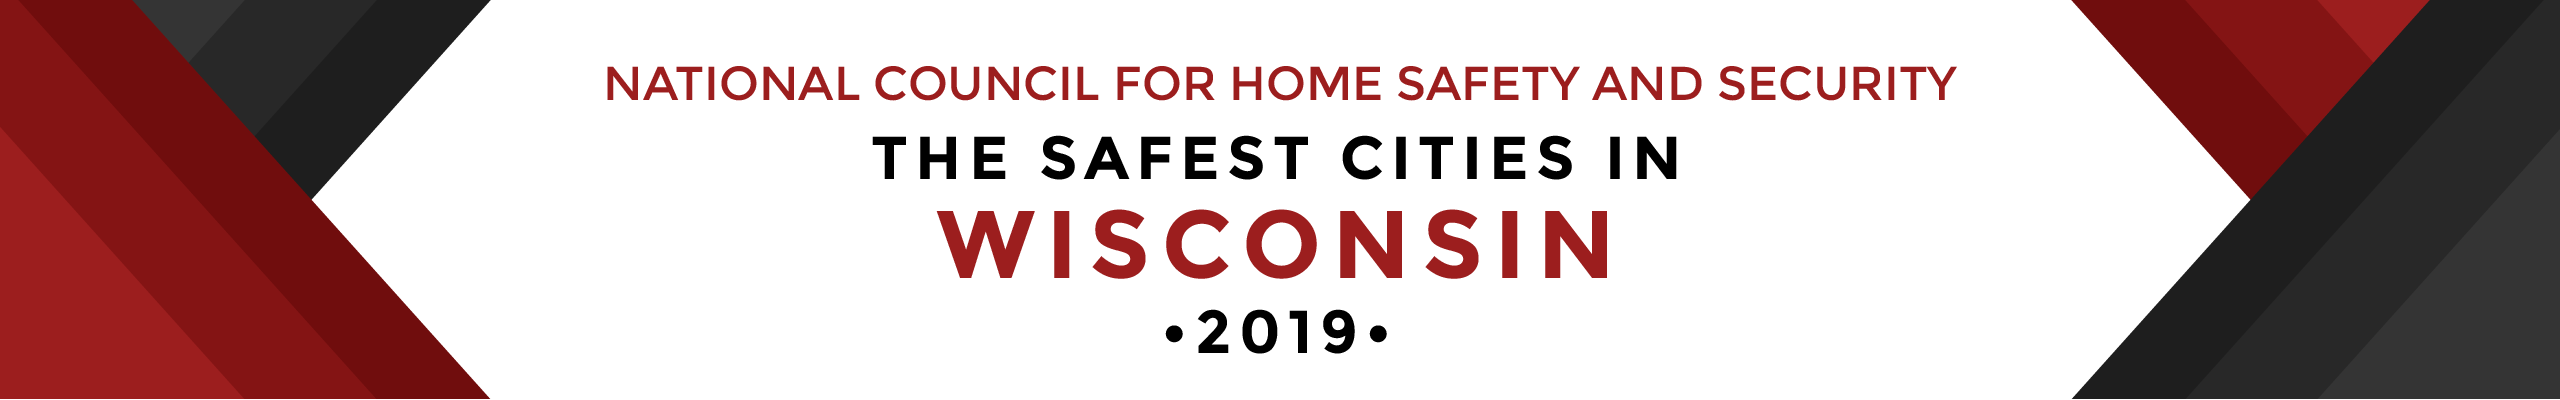 Safest Cities Wisconsin - header